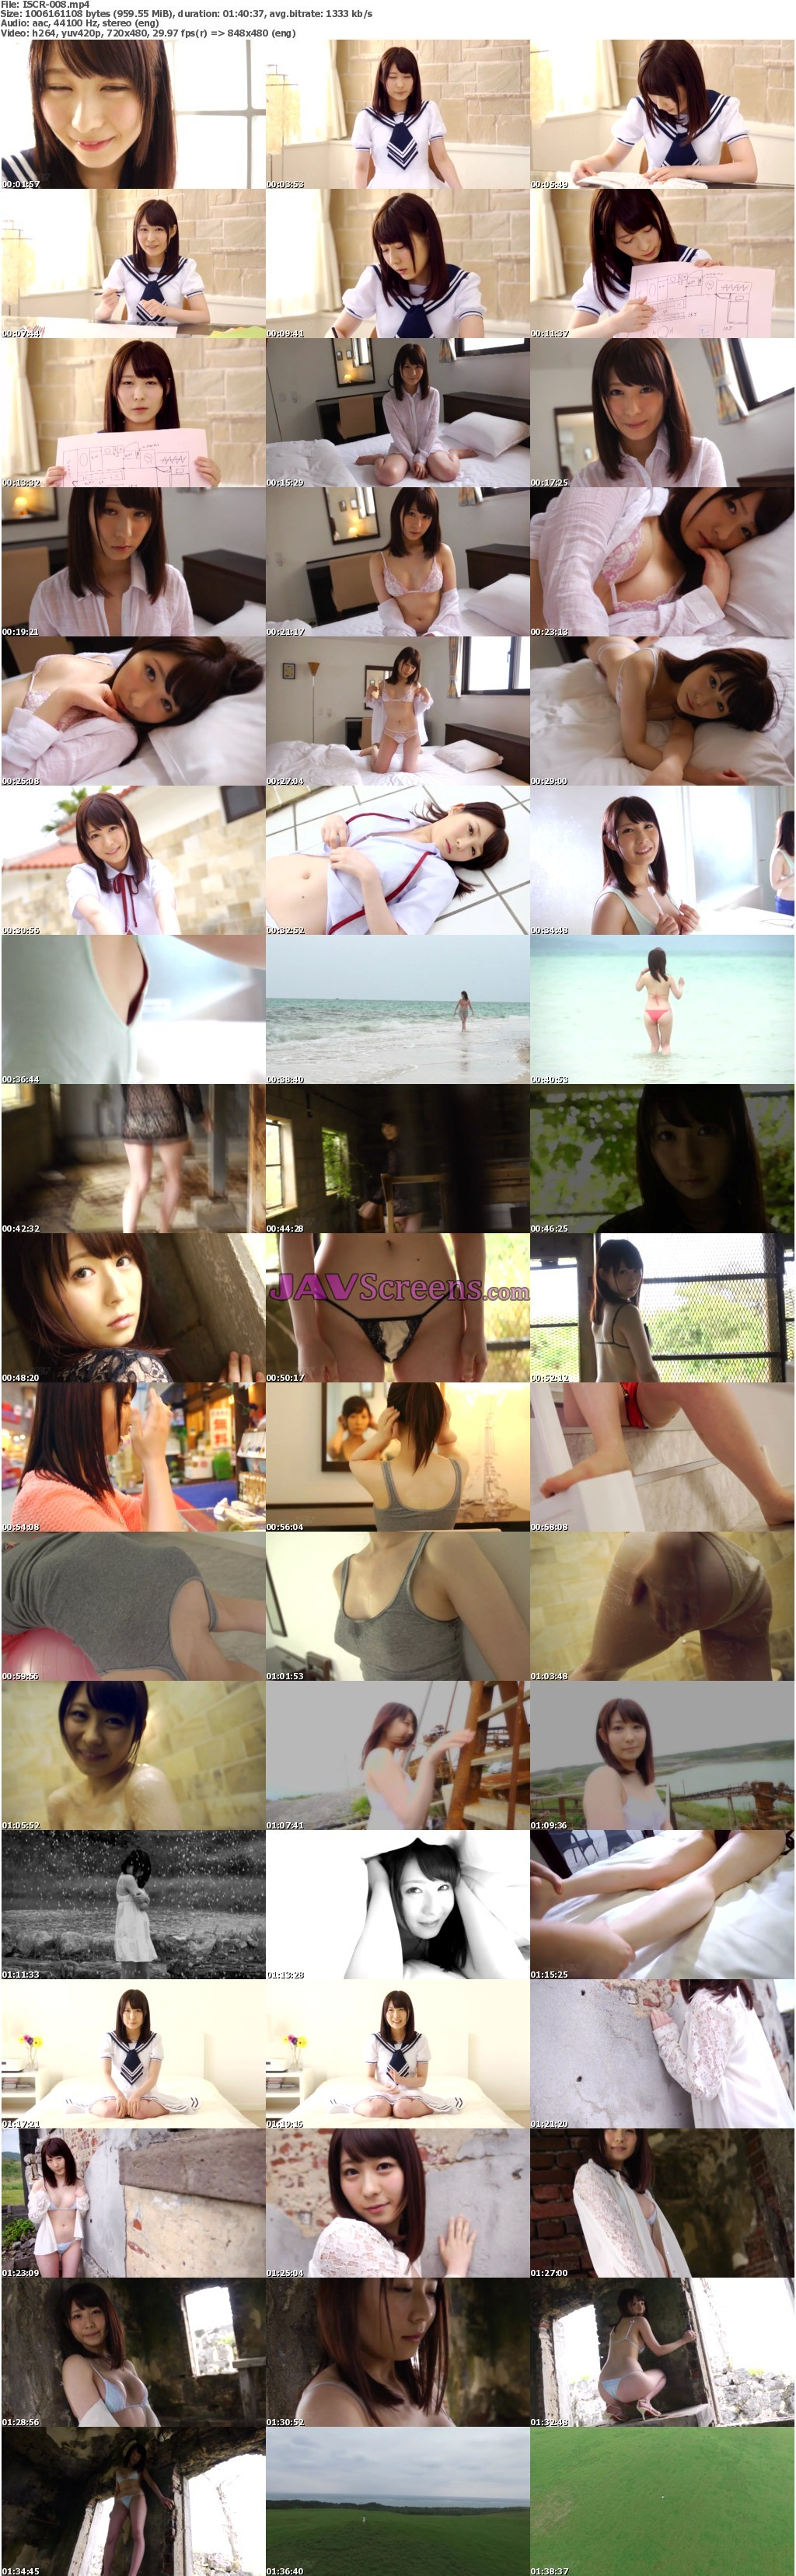 ISCR-008.jpg - JAV Screenshot